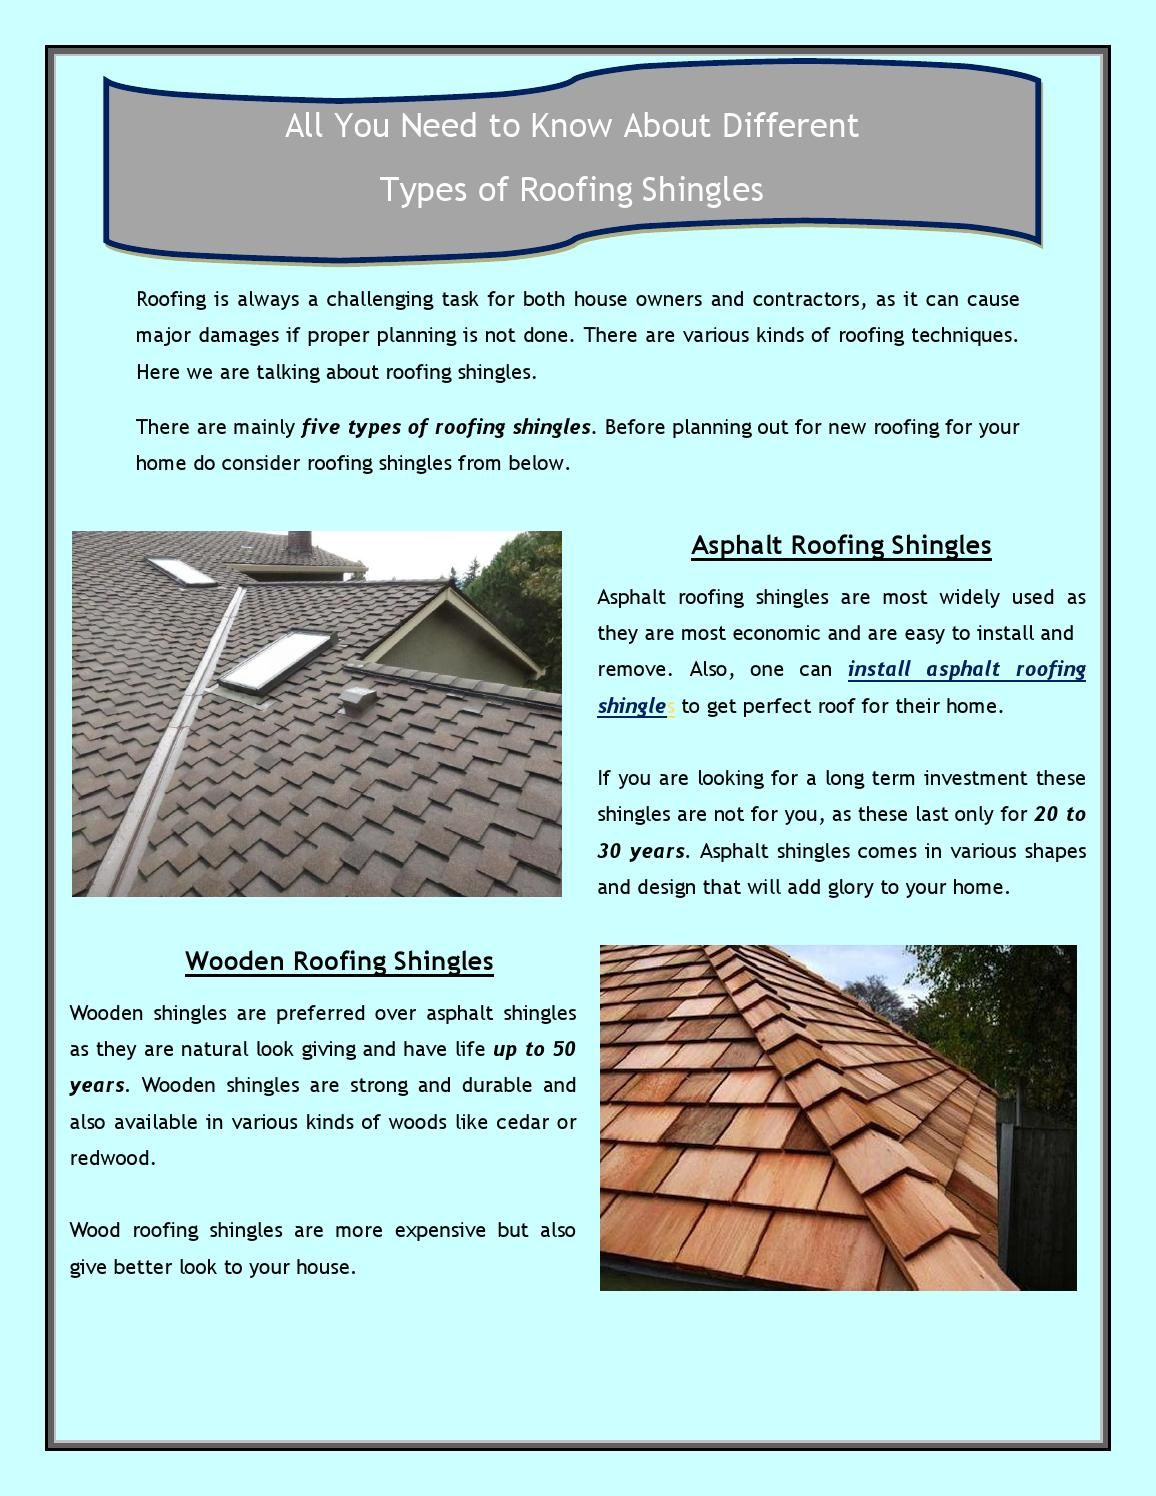 All You Need To Know About Different Types Of Roofing Shingles